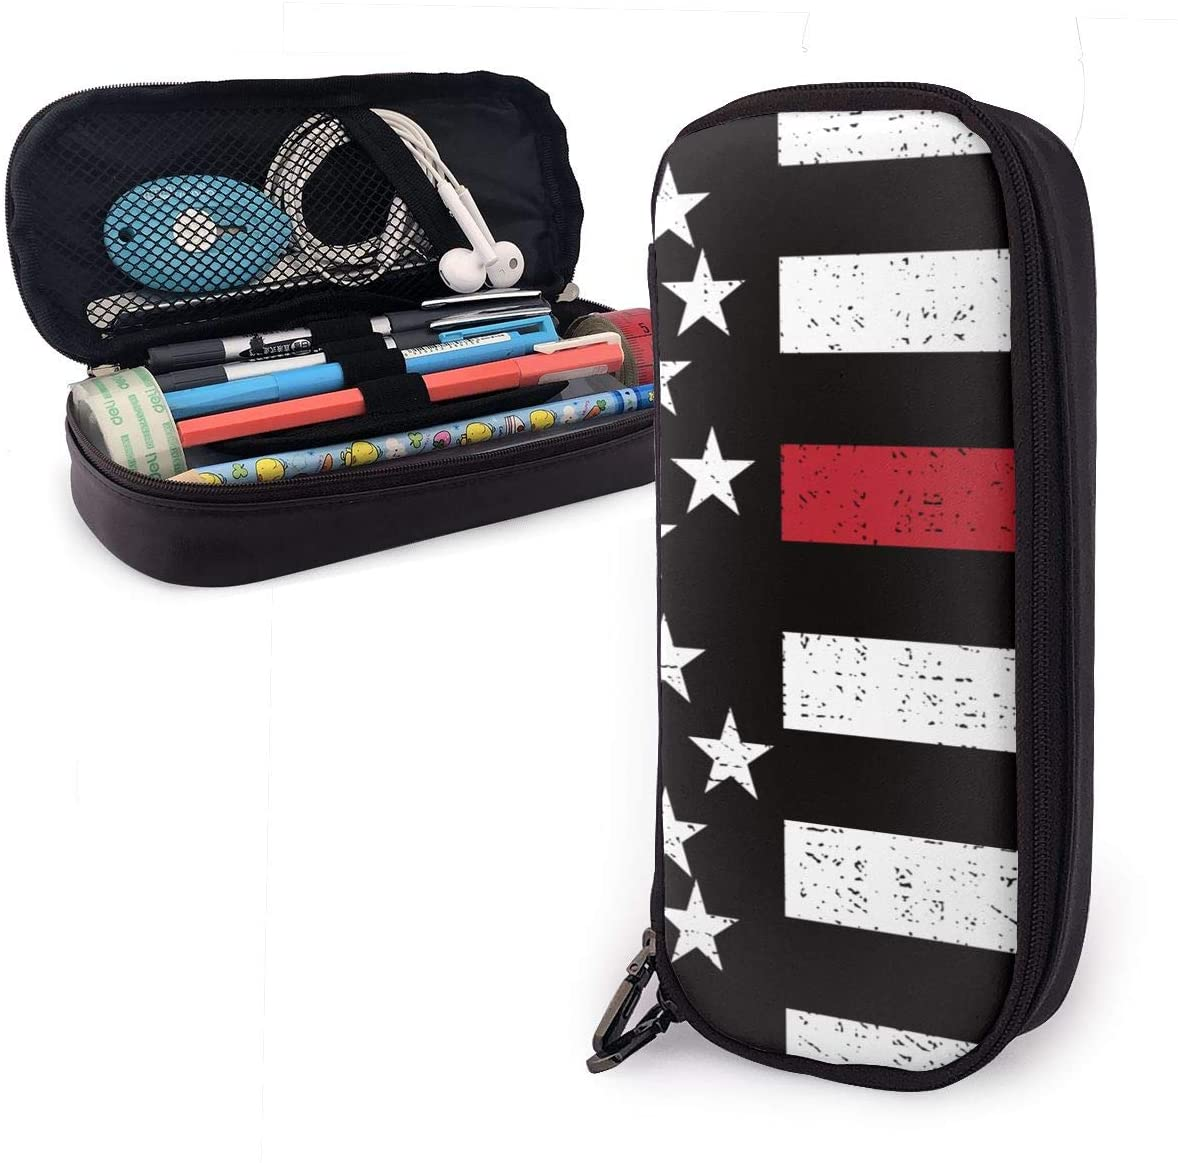 NiYoung American Red Line Flag Art Pencil Bag Pen Case, Students Stationery Pouch Zipper Pencil Box for Pens, Pencils Drawing Painting Children - Big Capacity Cosmetic Bag